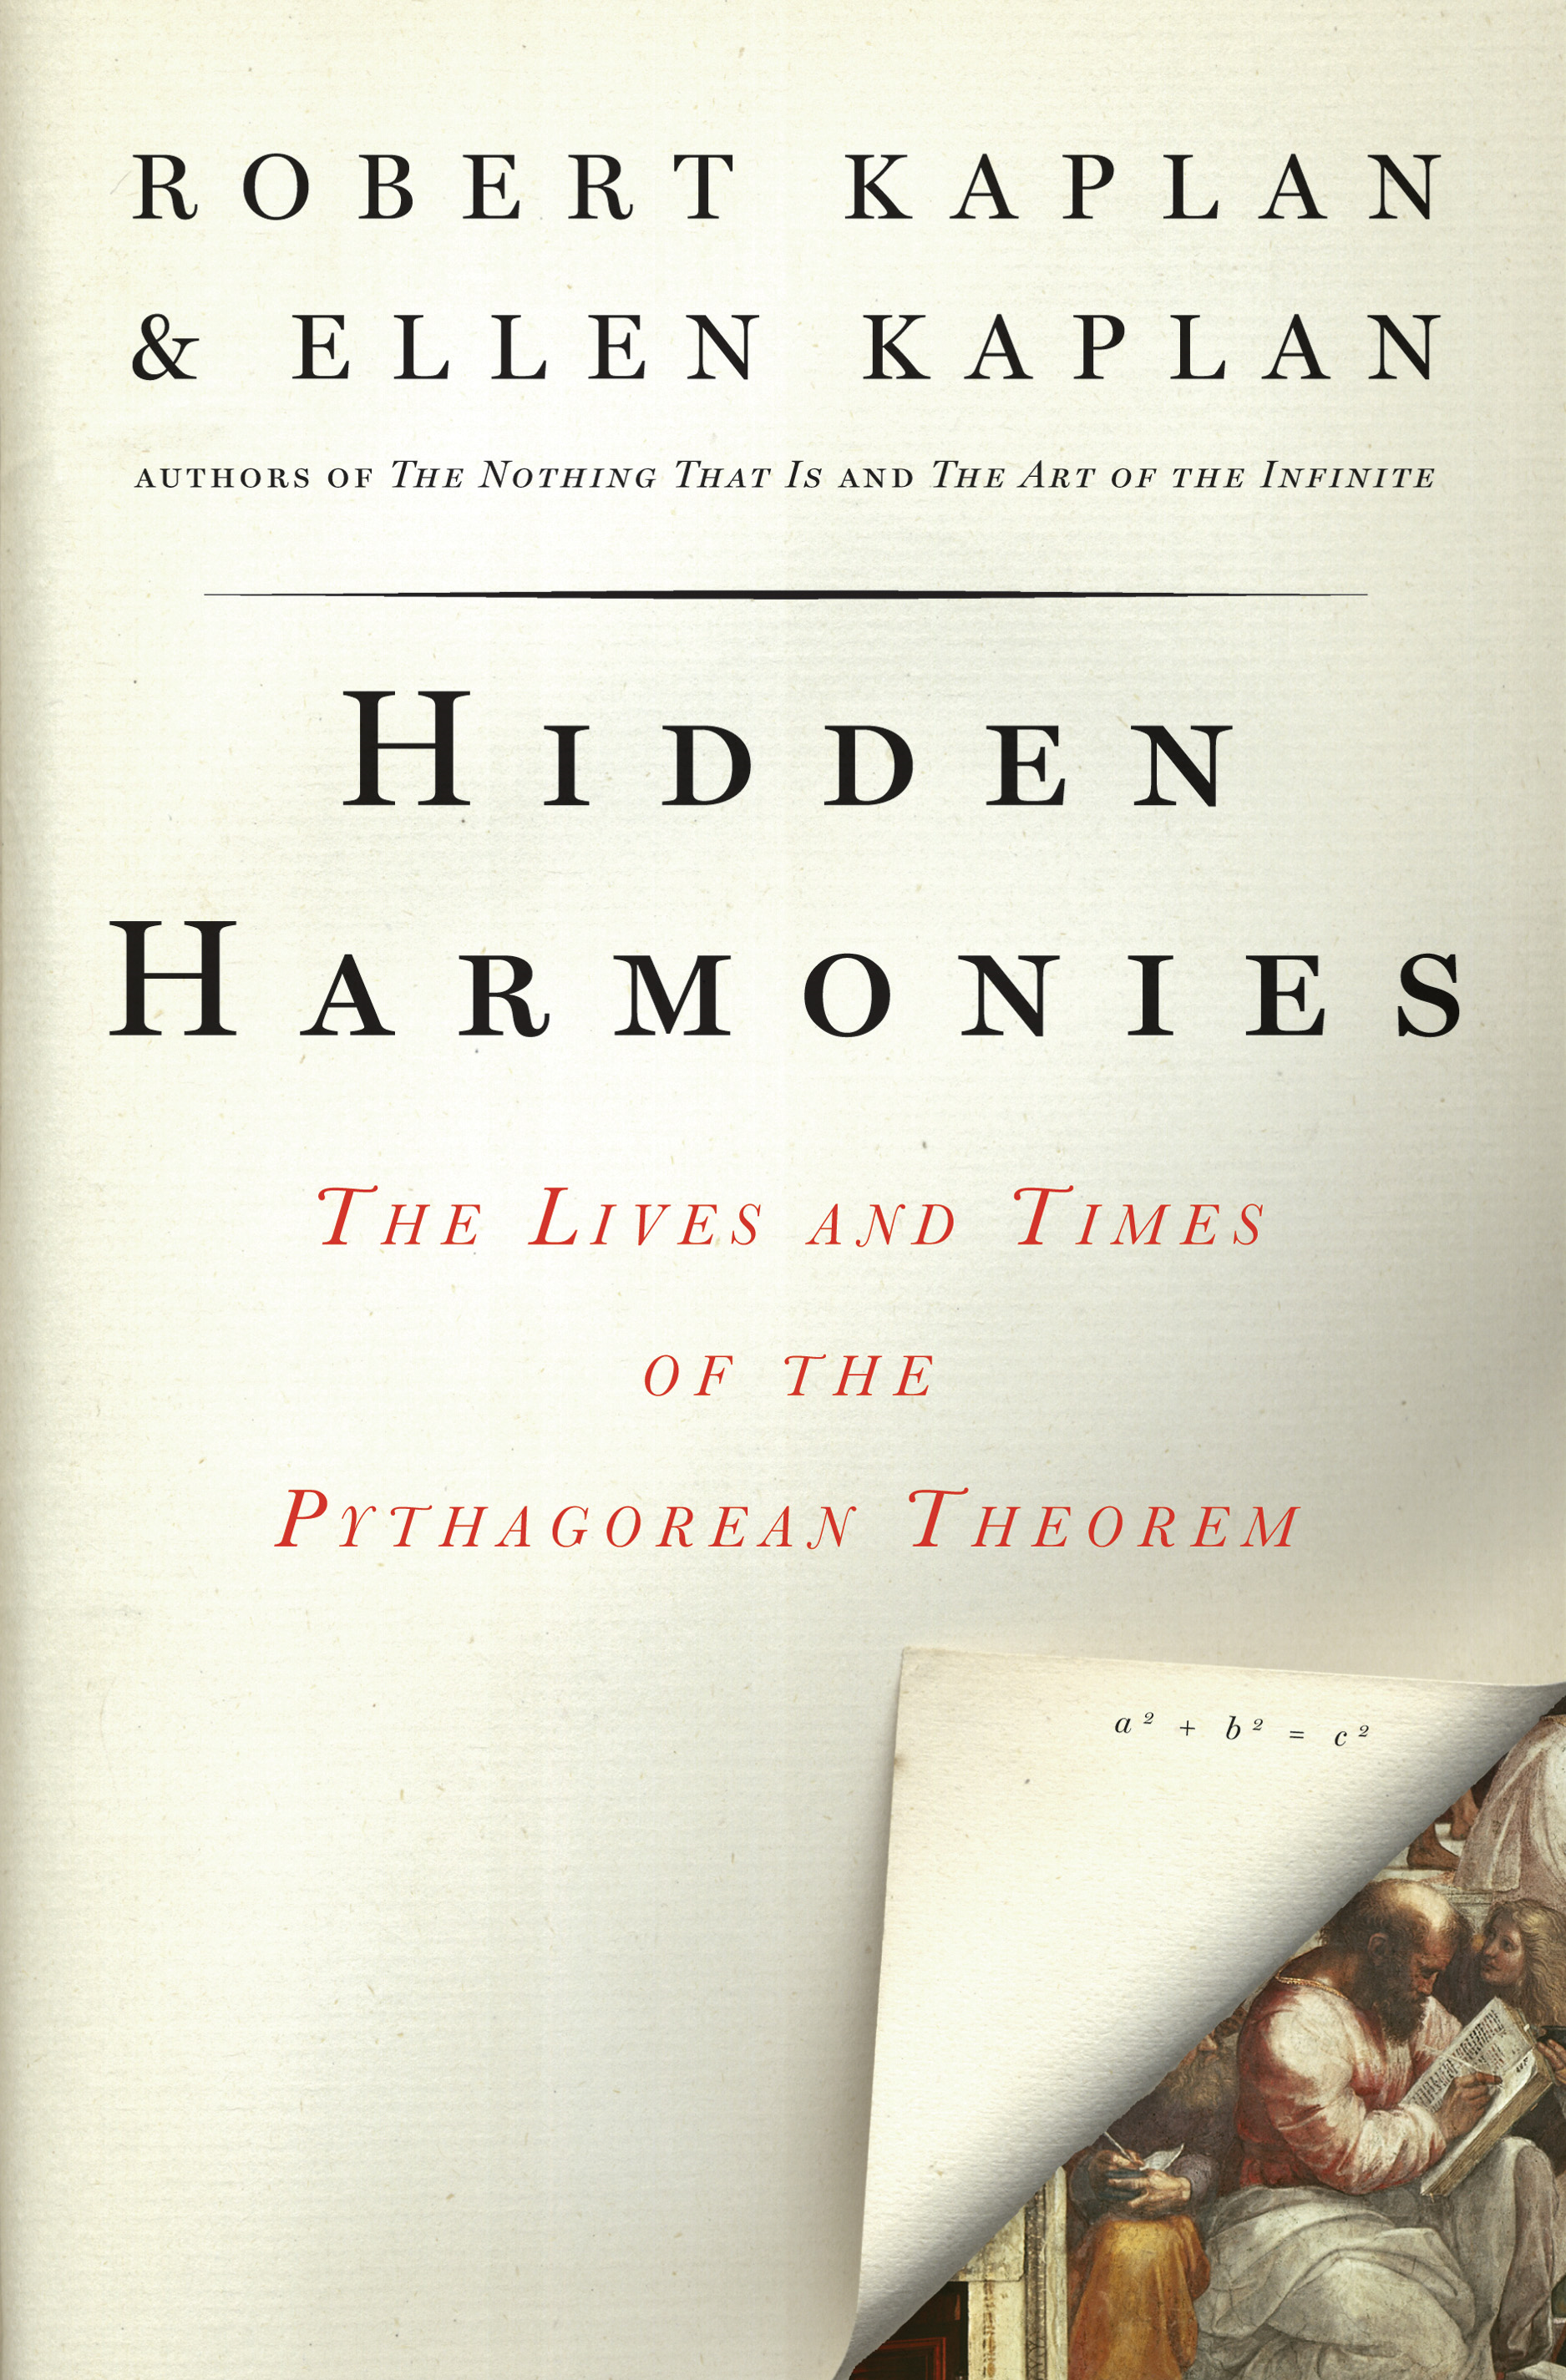 Hidden Harmonies: The Lives and Times of the Pythagorean Theorem The Lives and Times of the Pythagorean Theorem